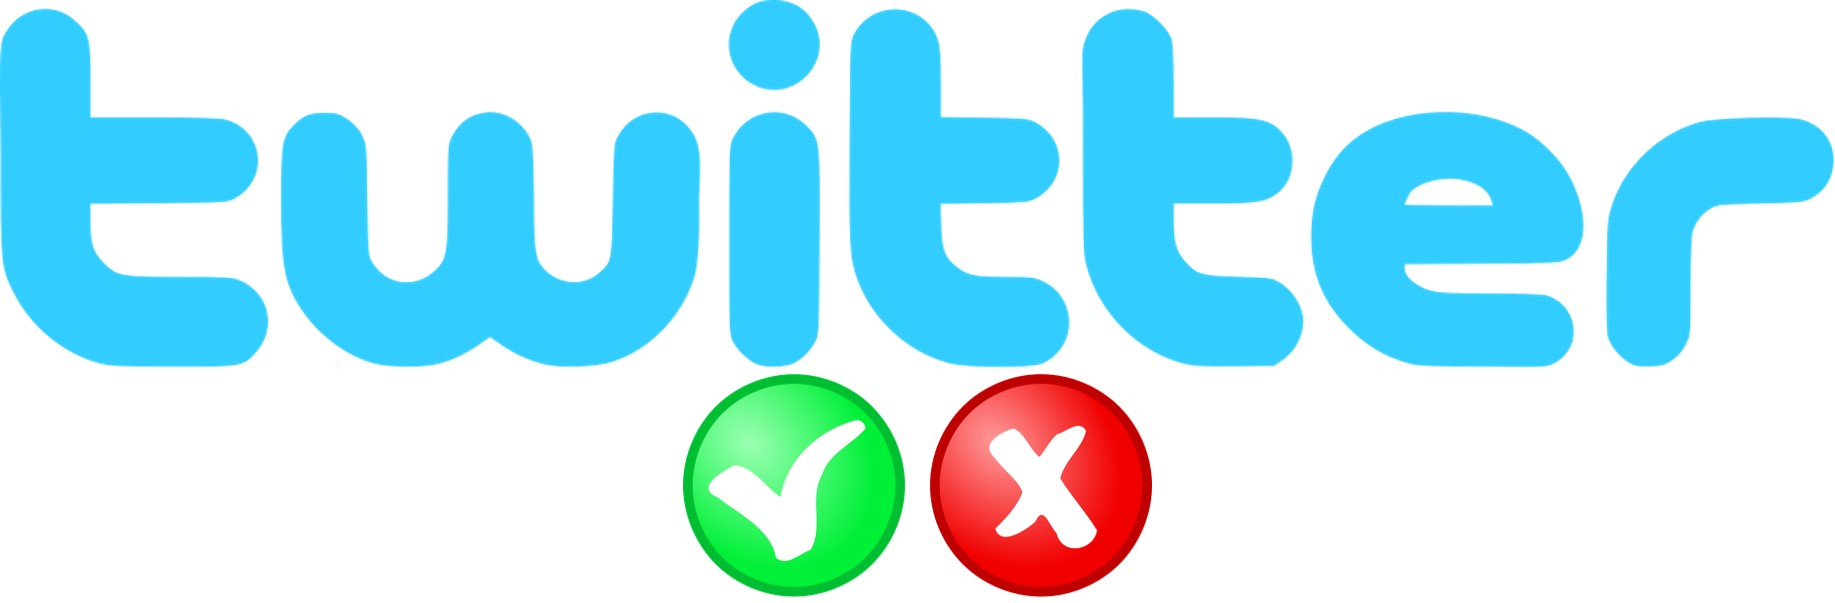 twitter yes or not